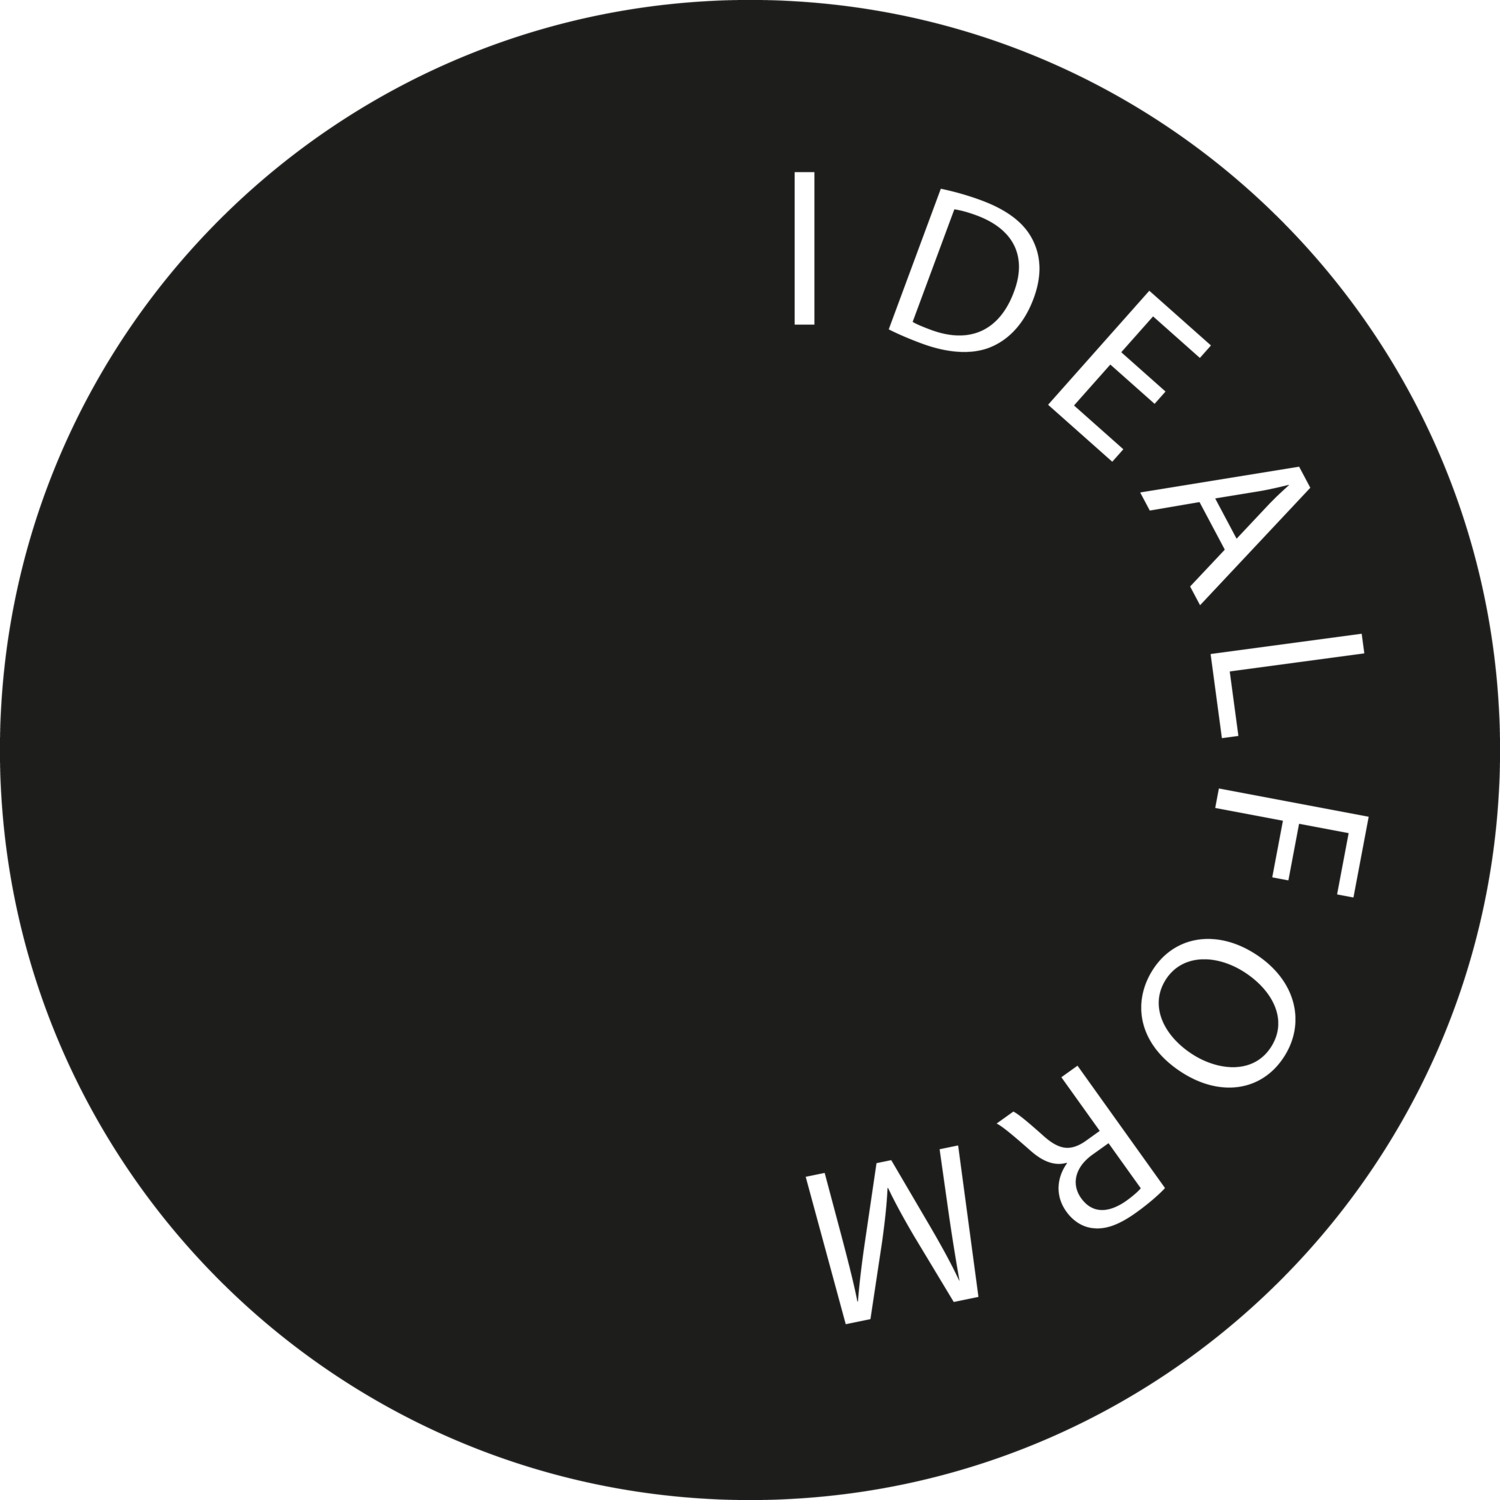 Idealform